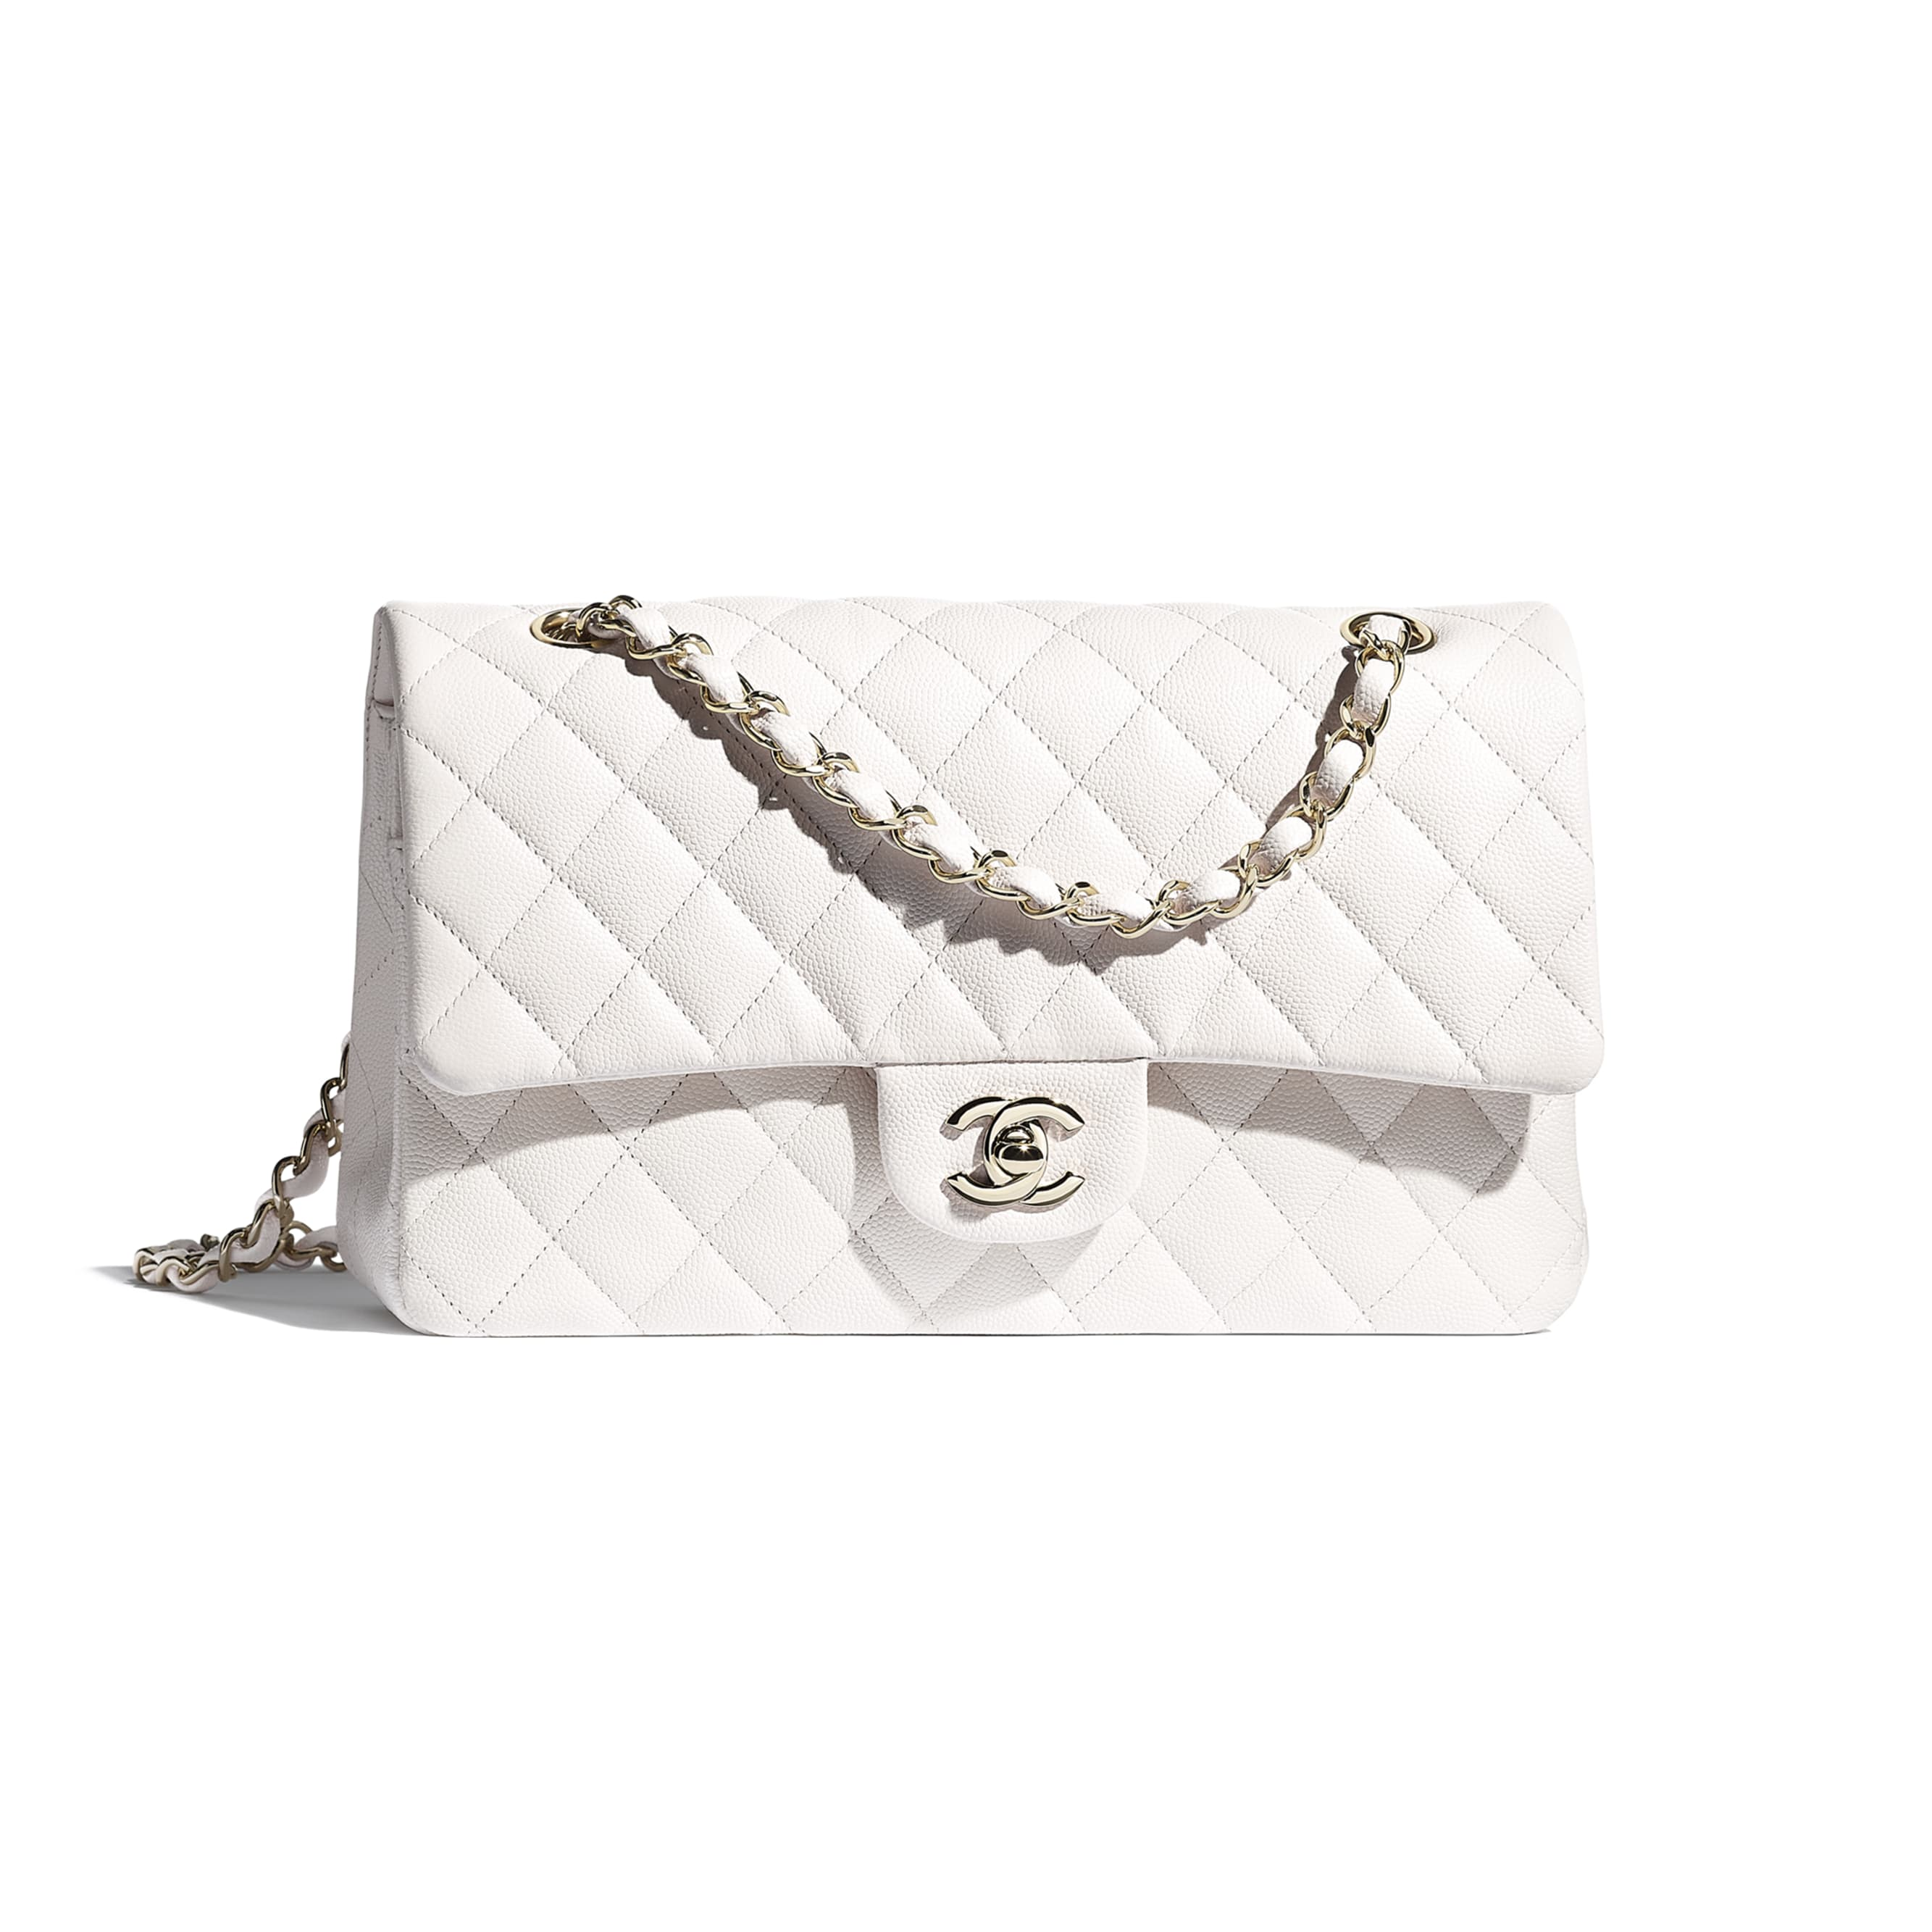 Classic Handbag - White - Grained Calfskin & Gold-Tone Metal - CHANEL - Default view - see standard sized version